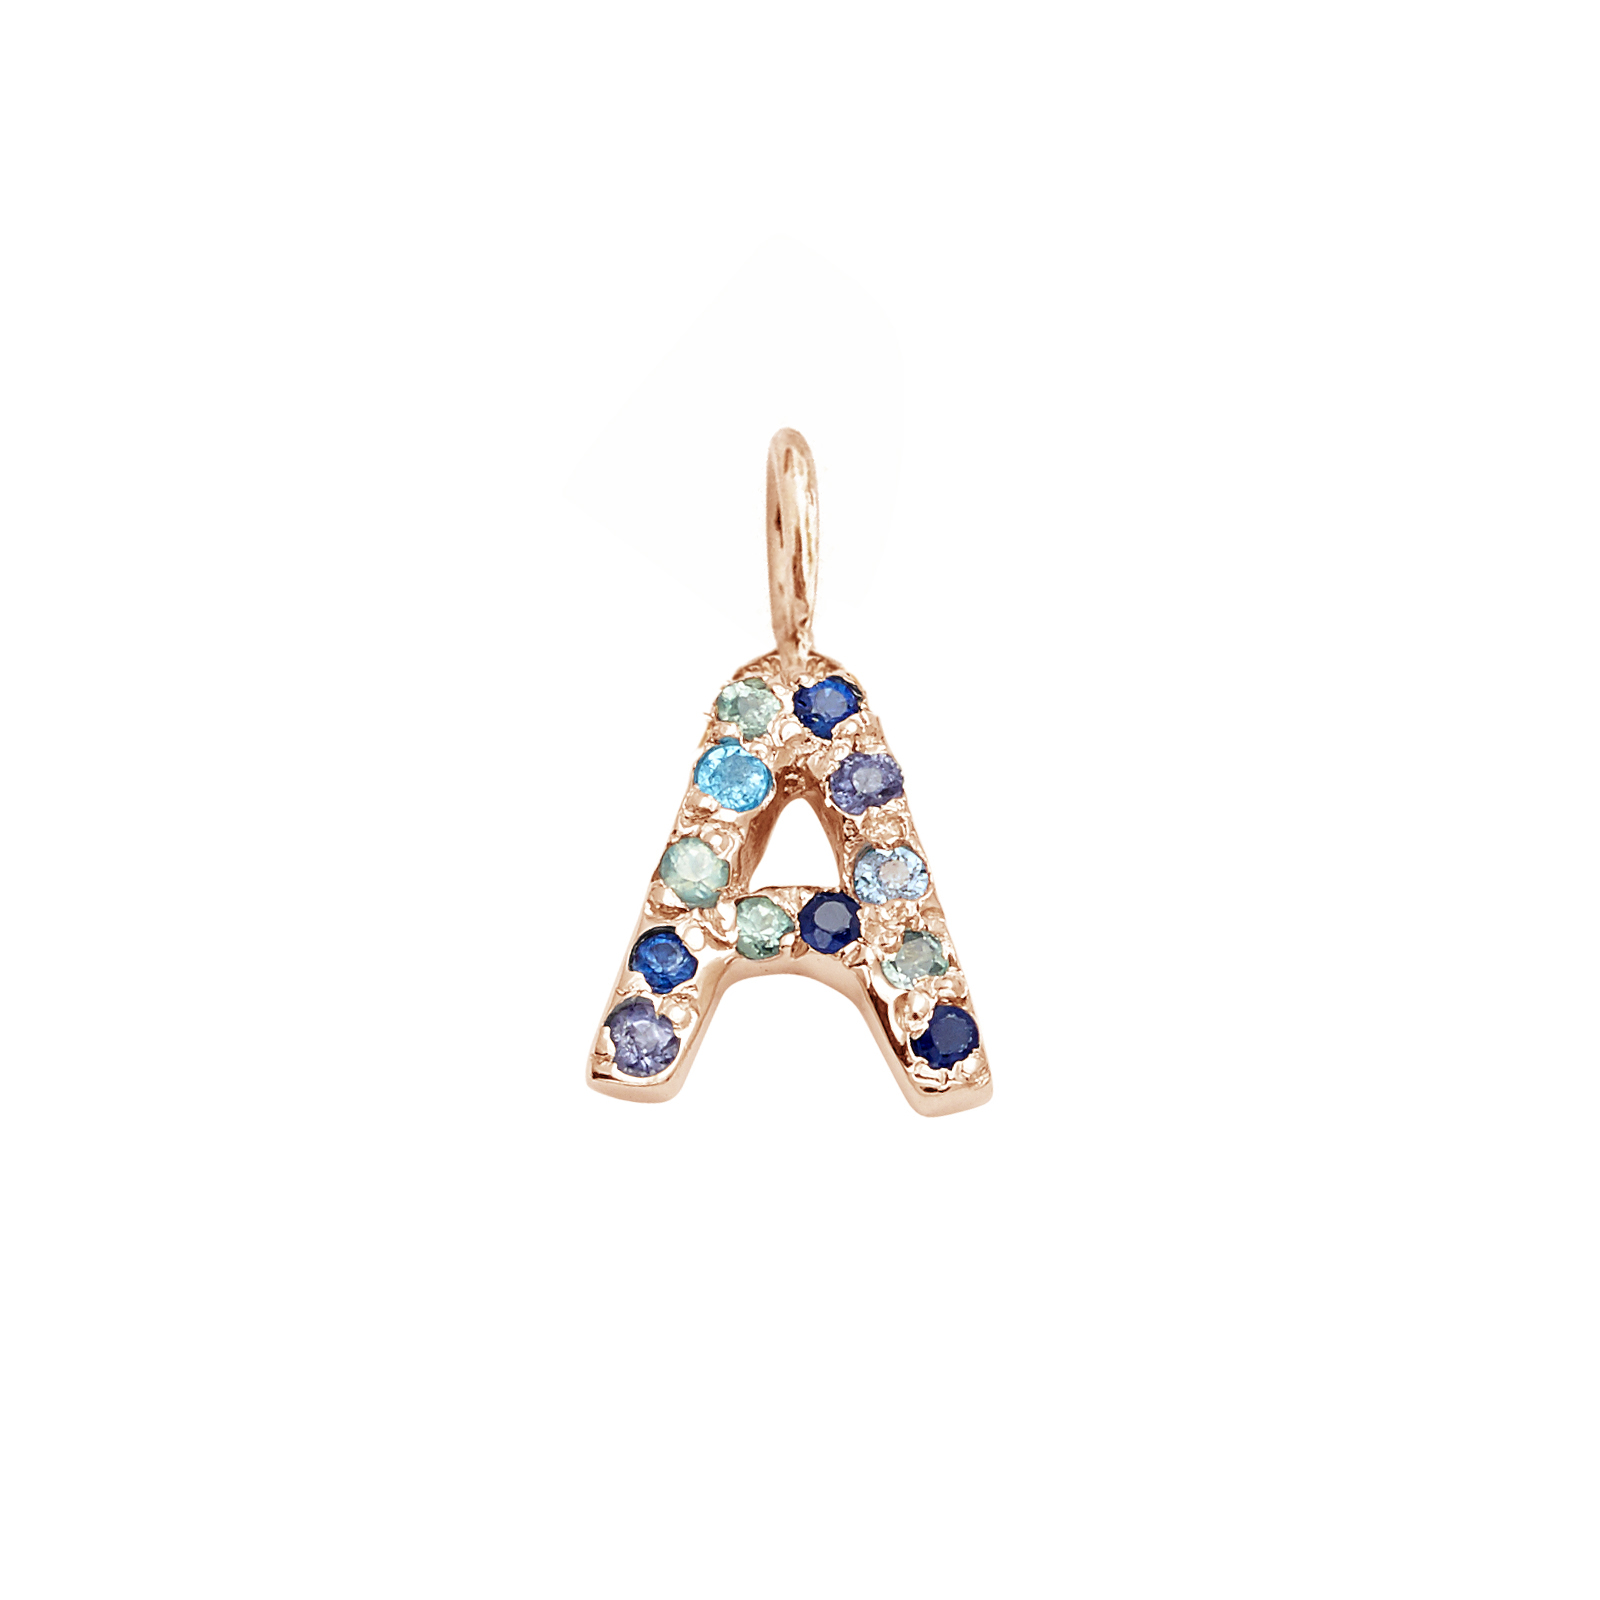 Letter Charm Pendant with Blue Hue Gems in 14k Pink Gold